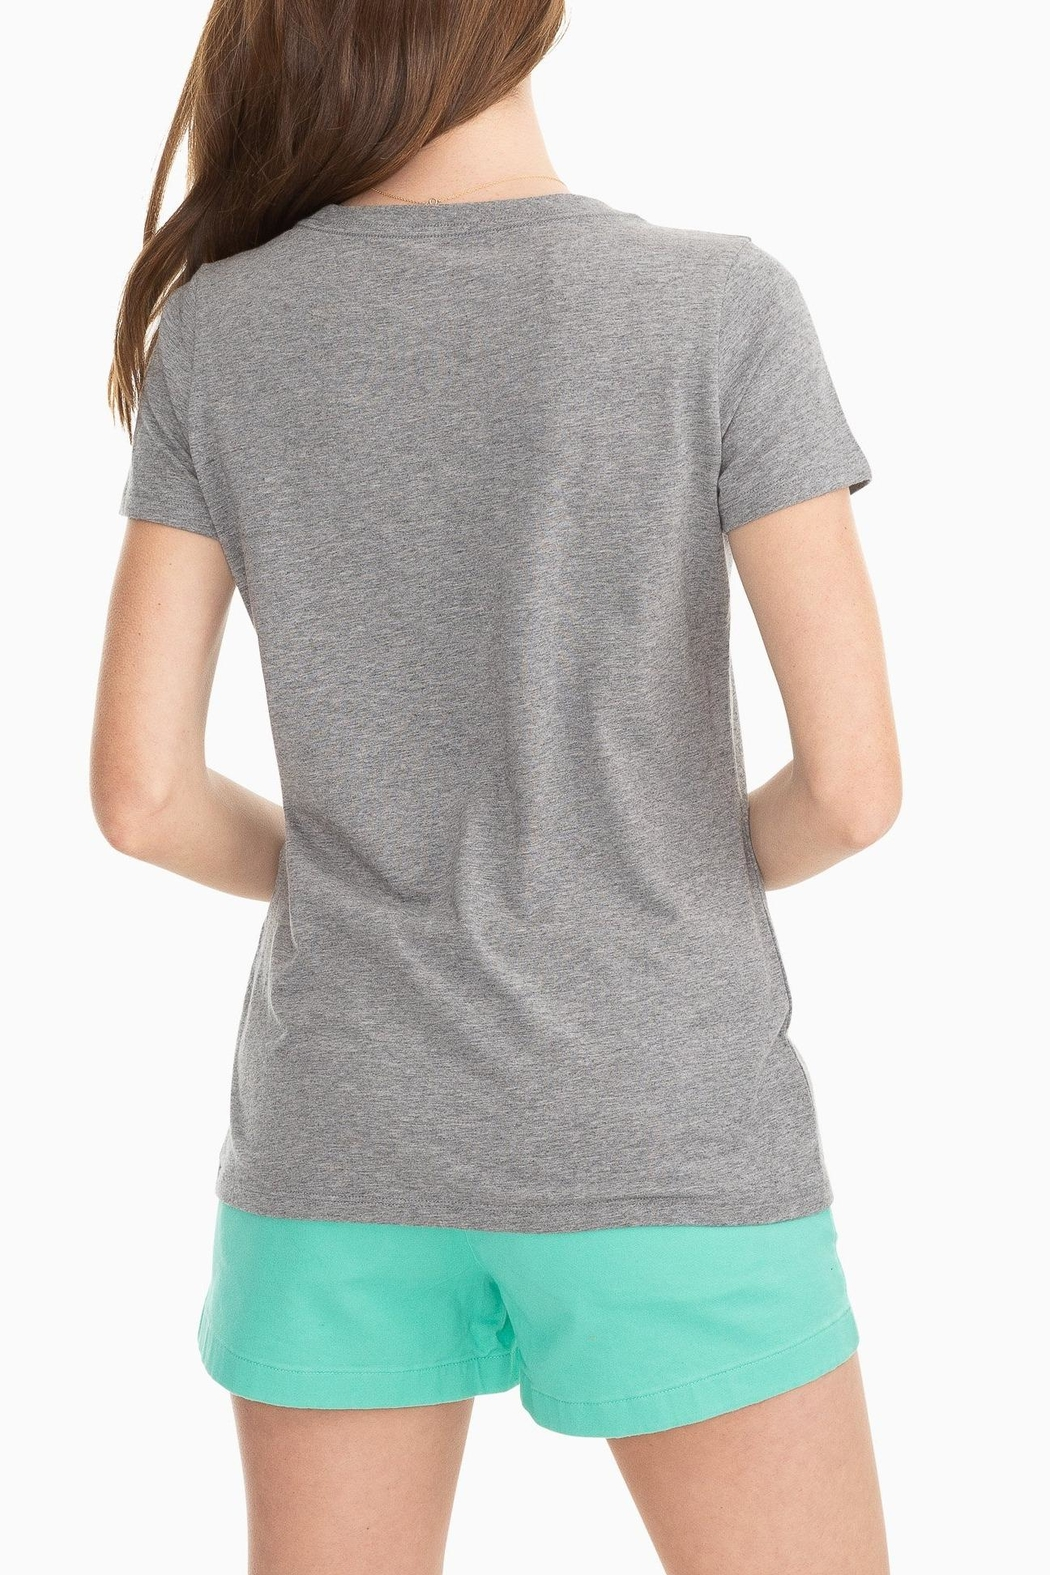 Southern Tide Beach Repeat T-Shirt - Side Cropped Image